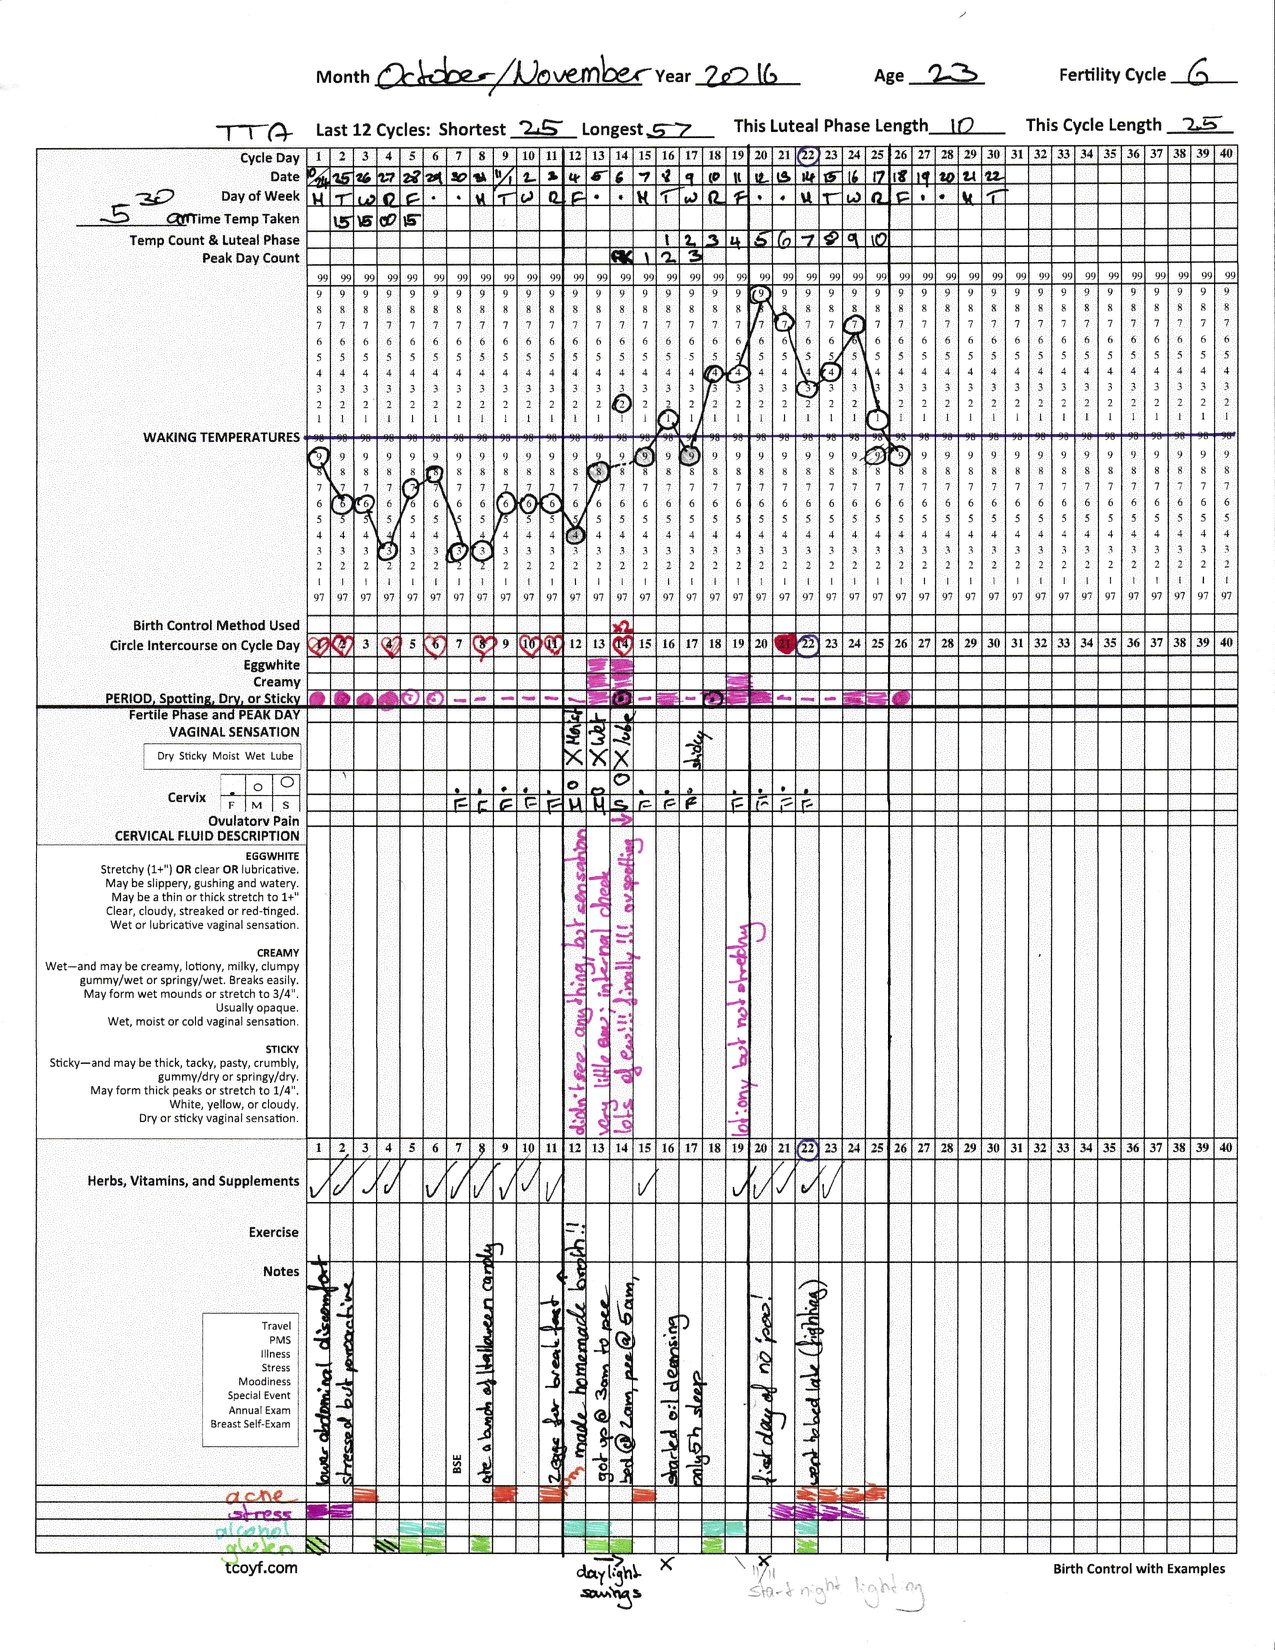 Cycle 6 after the pill, TCOYF chart